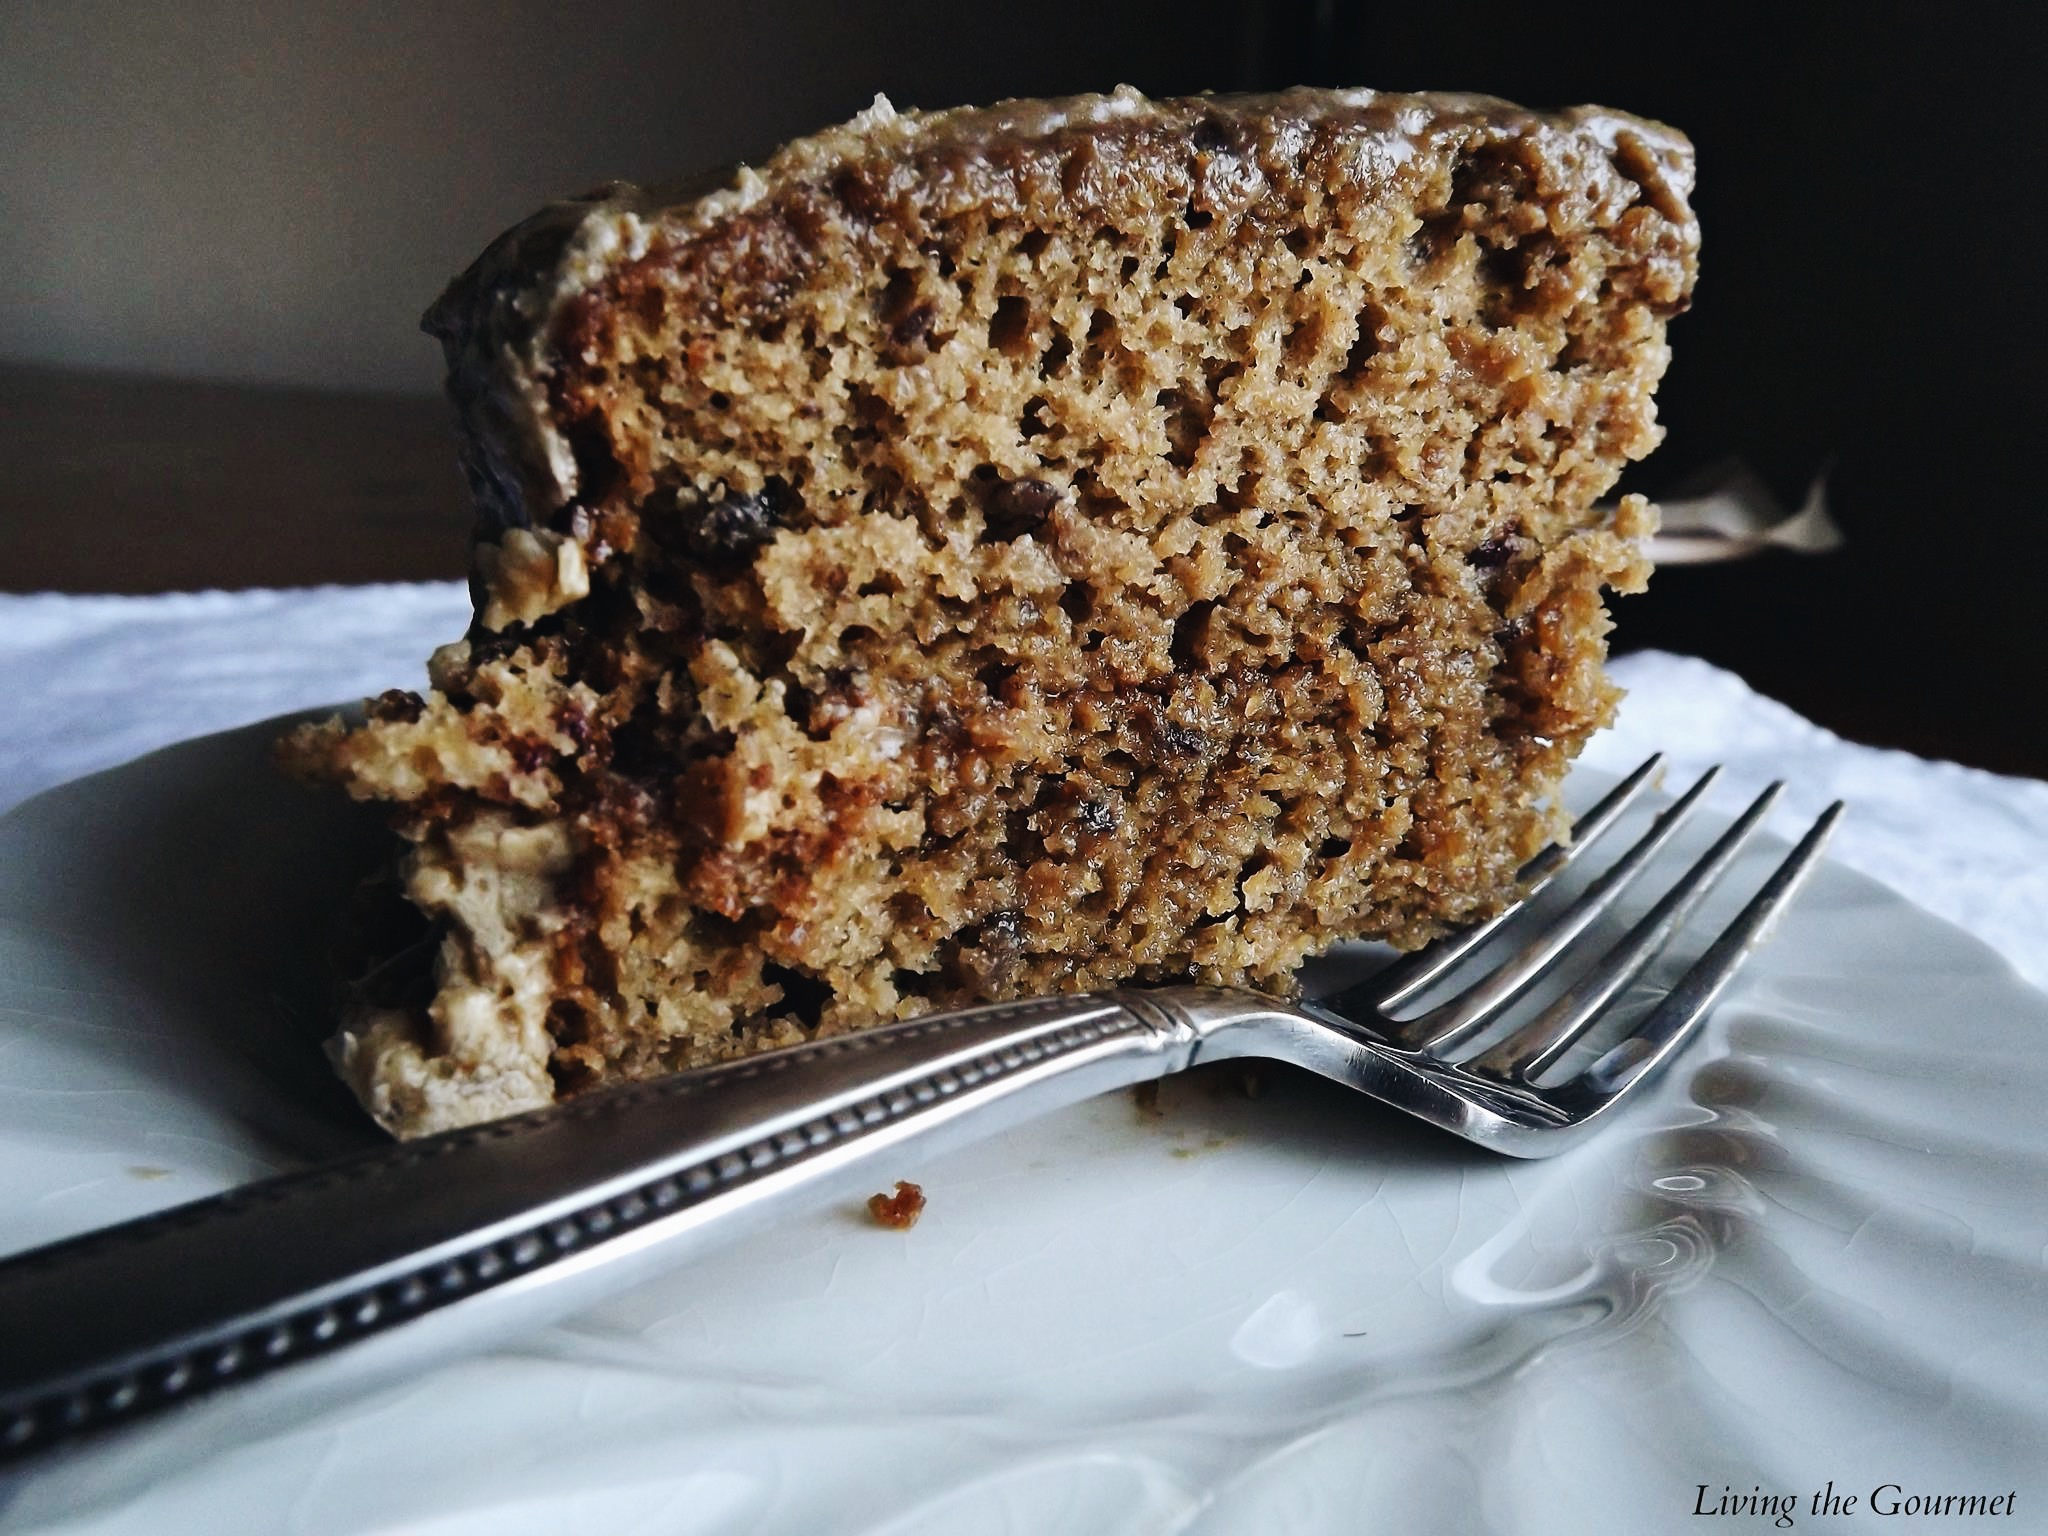 Living the Gourmet: Date Cake